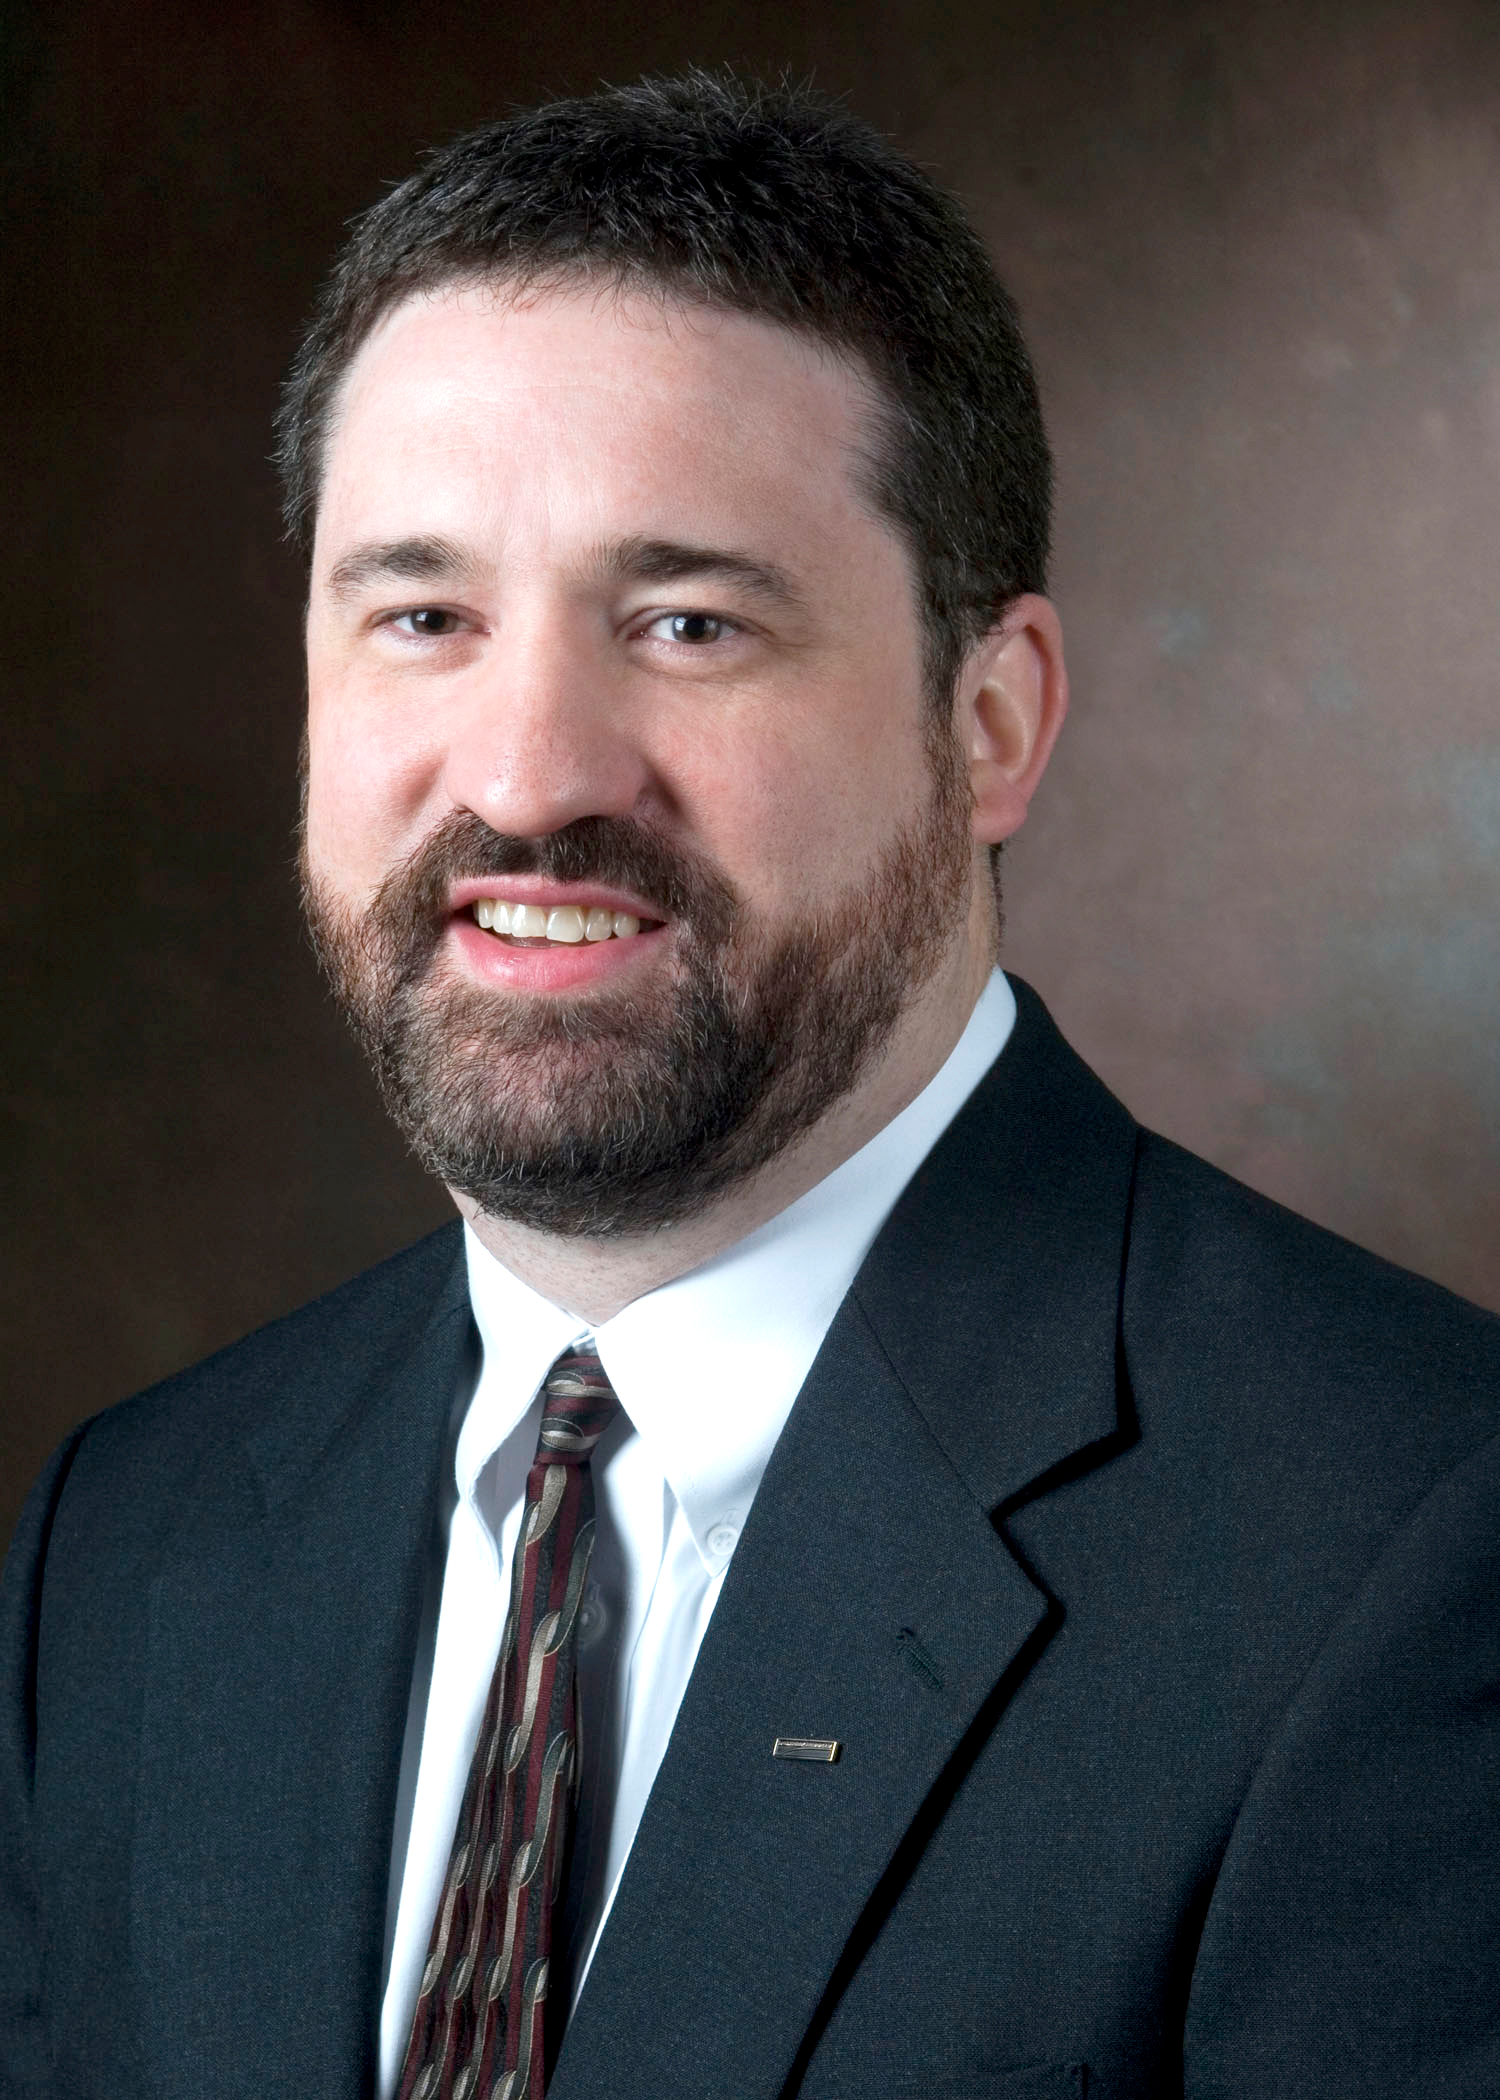 Photo Release -- Northrop Grumman Appoints David Reith and